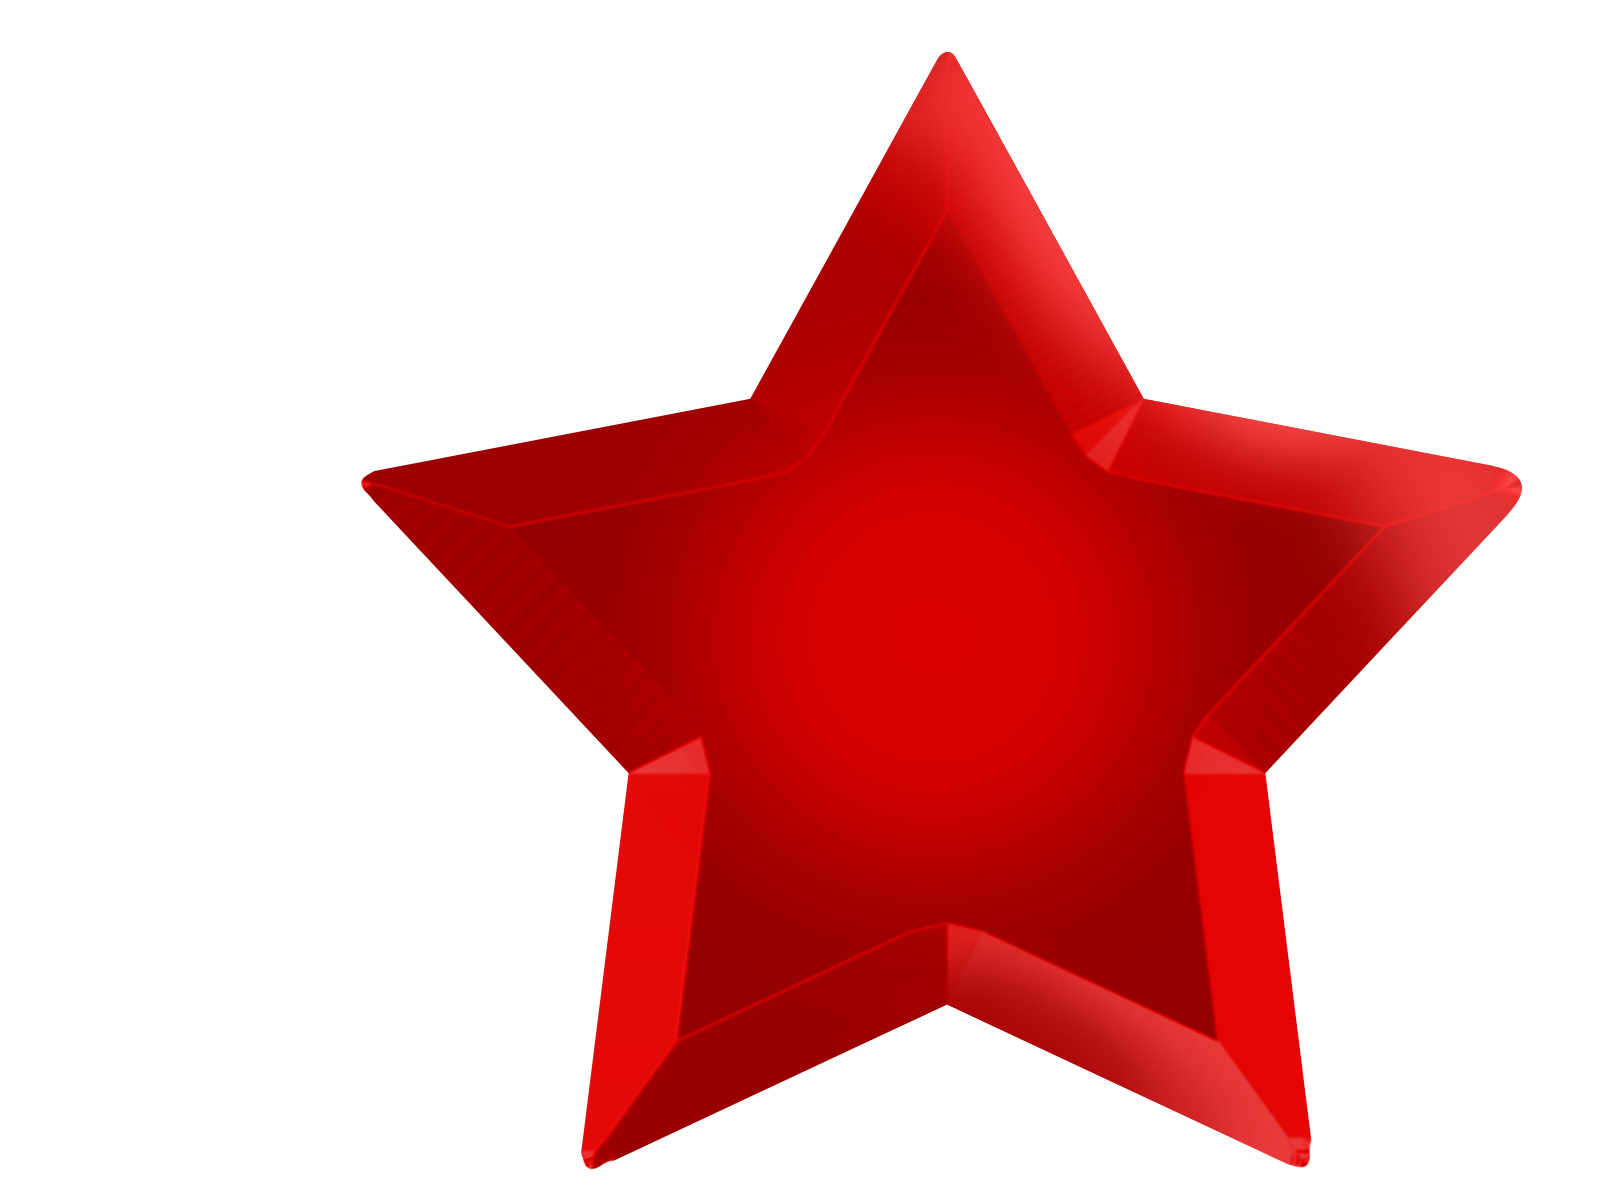 Png image park high. Galaxy clipart realistic star